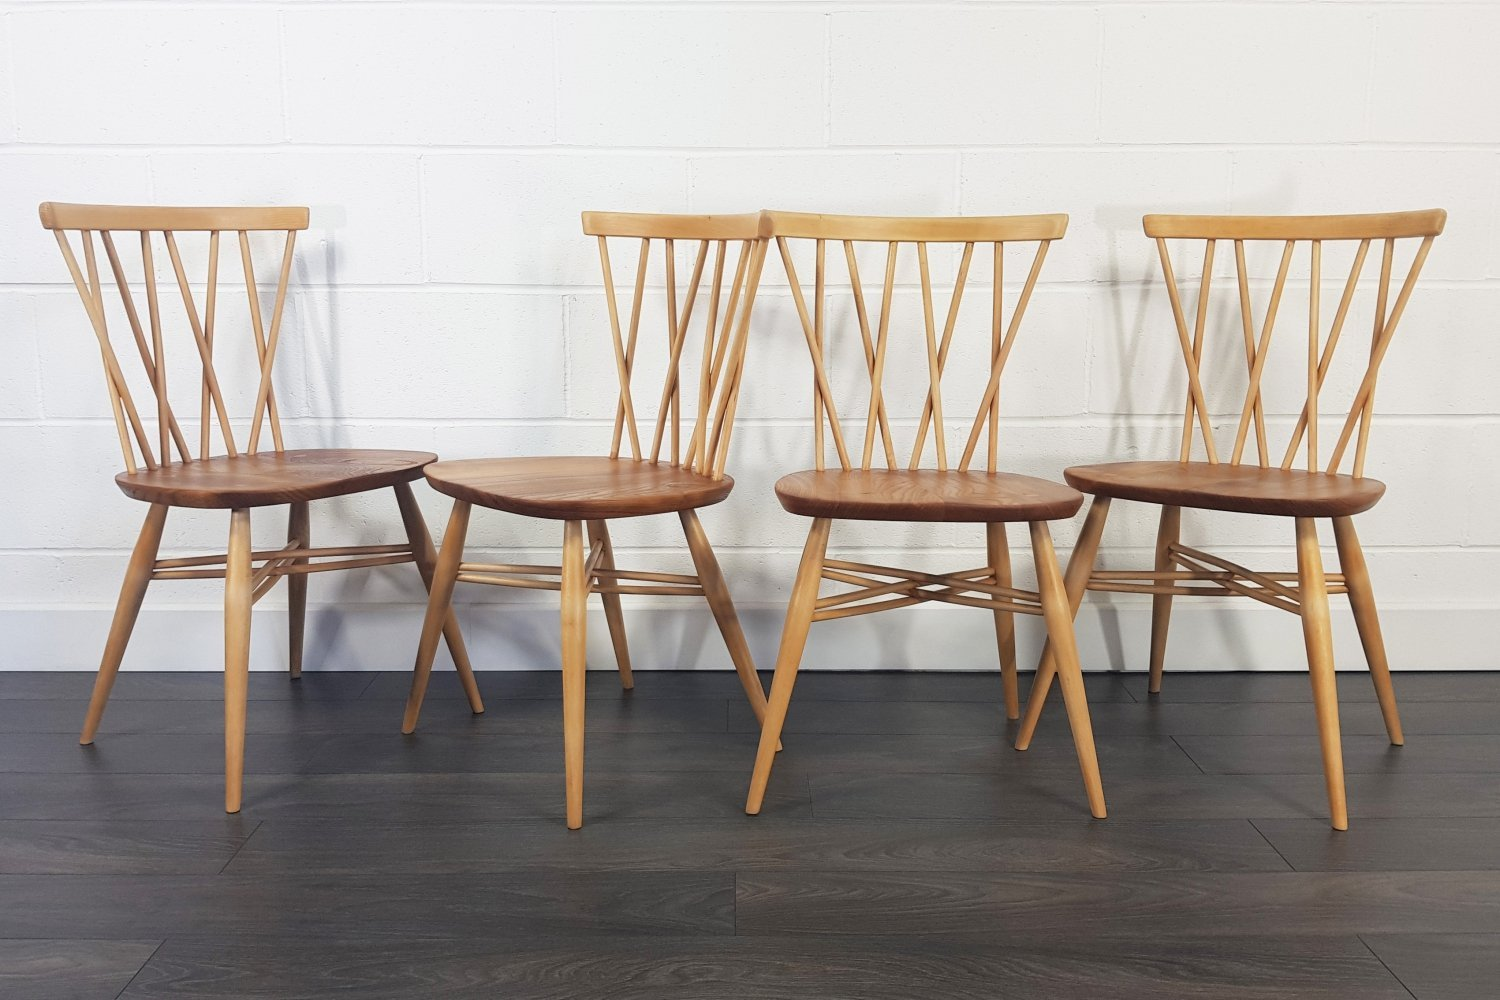 Set of 4 Candlestick Dining Chairs by Lucian Ercolani for Ercol, 1960s